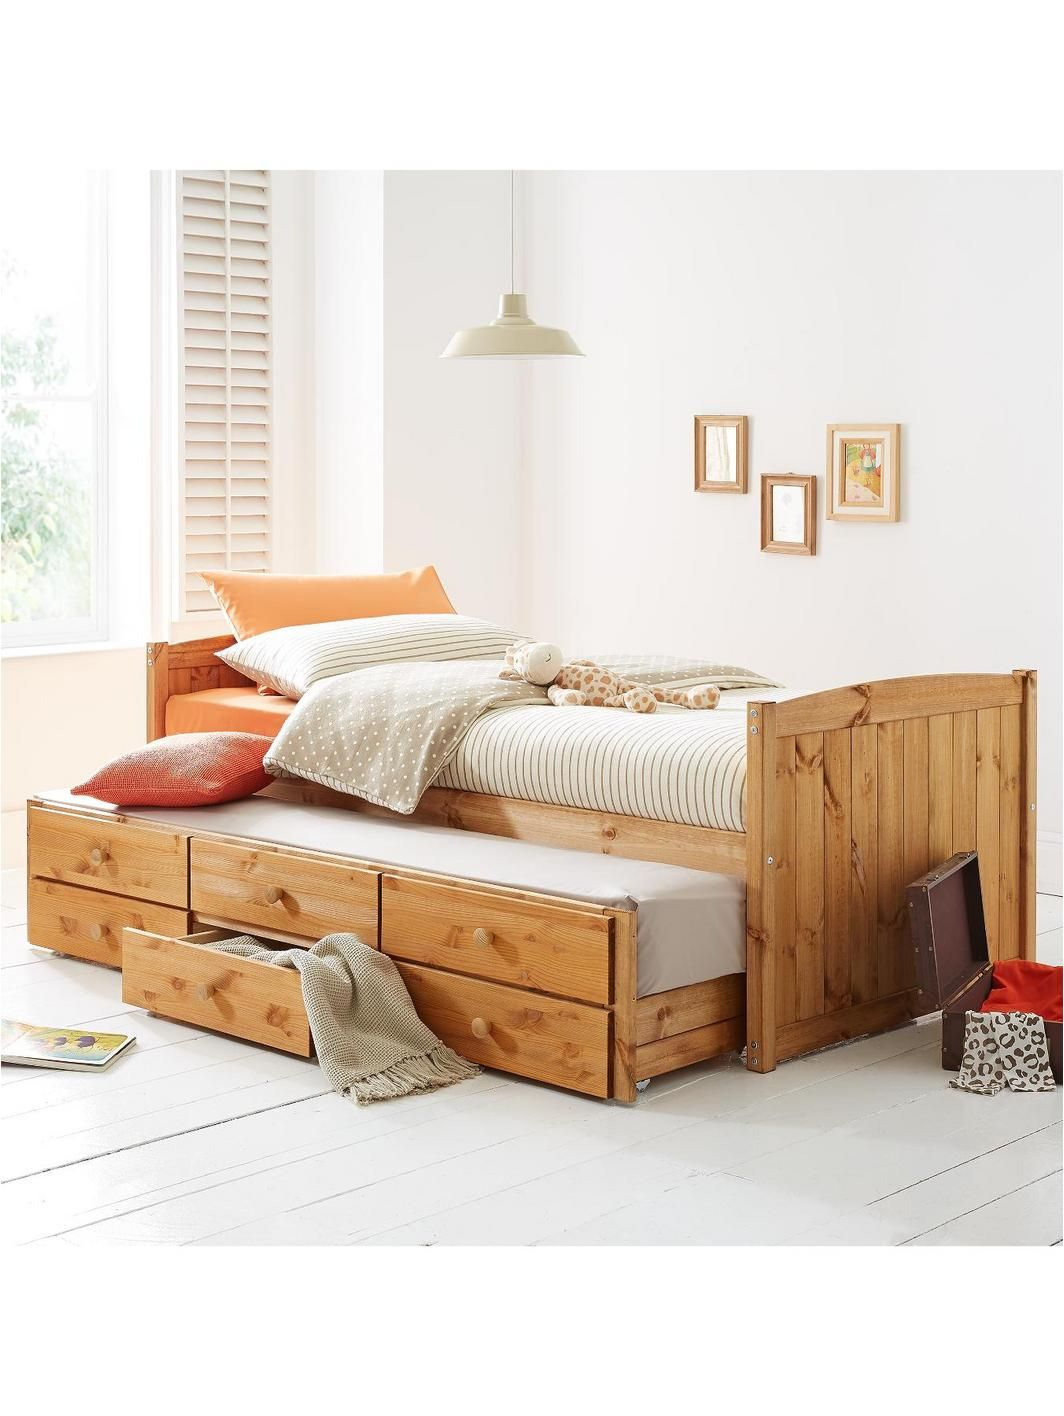 Childrens Beds With Pull Out Bed Underneath Womens Mens And Kids Fashion Furniture Electricals More In